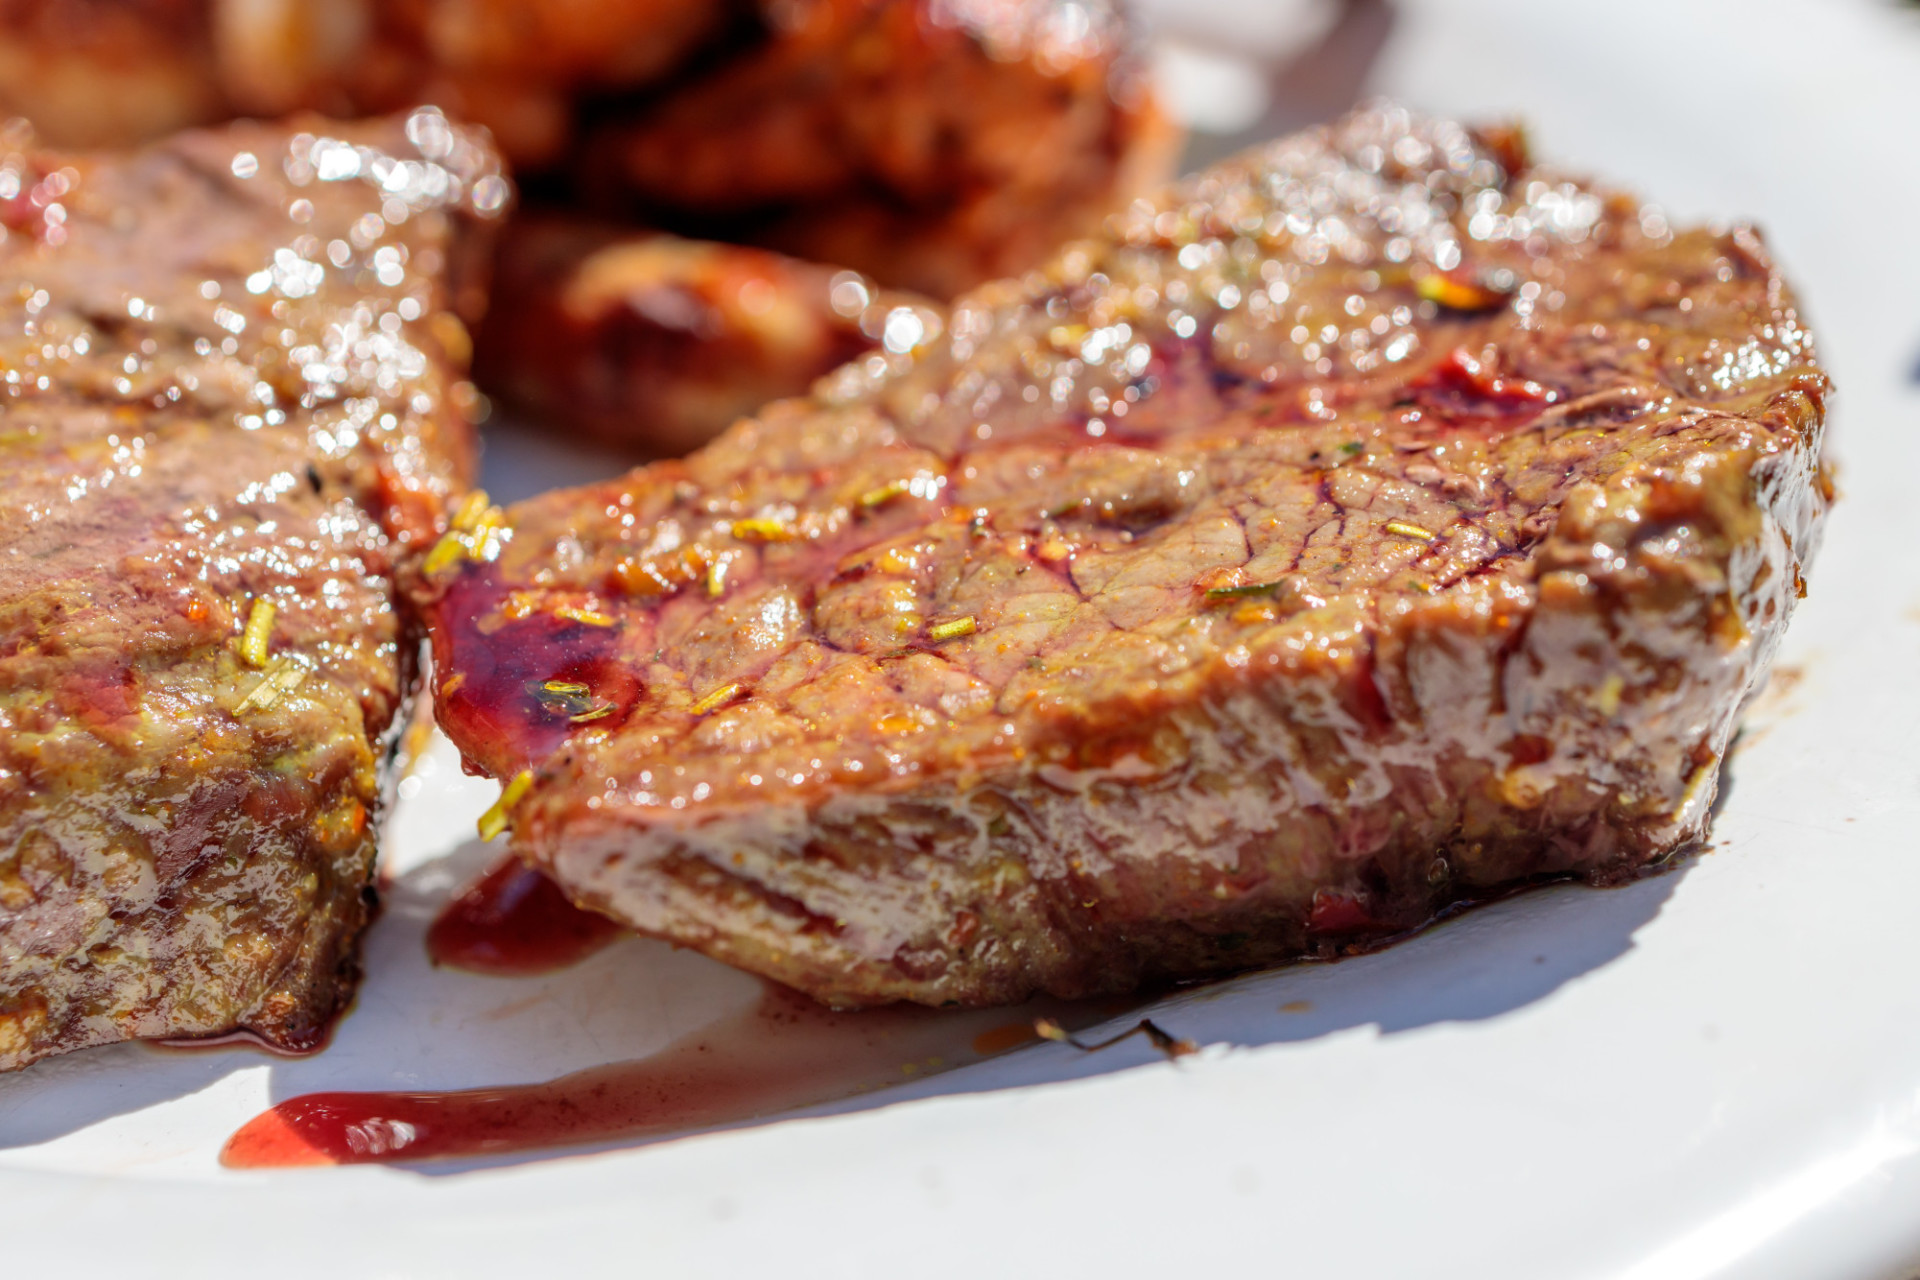 Juicy steaks from the grill